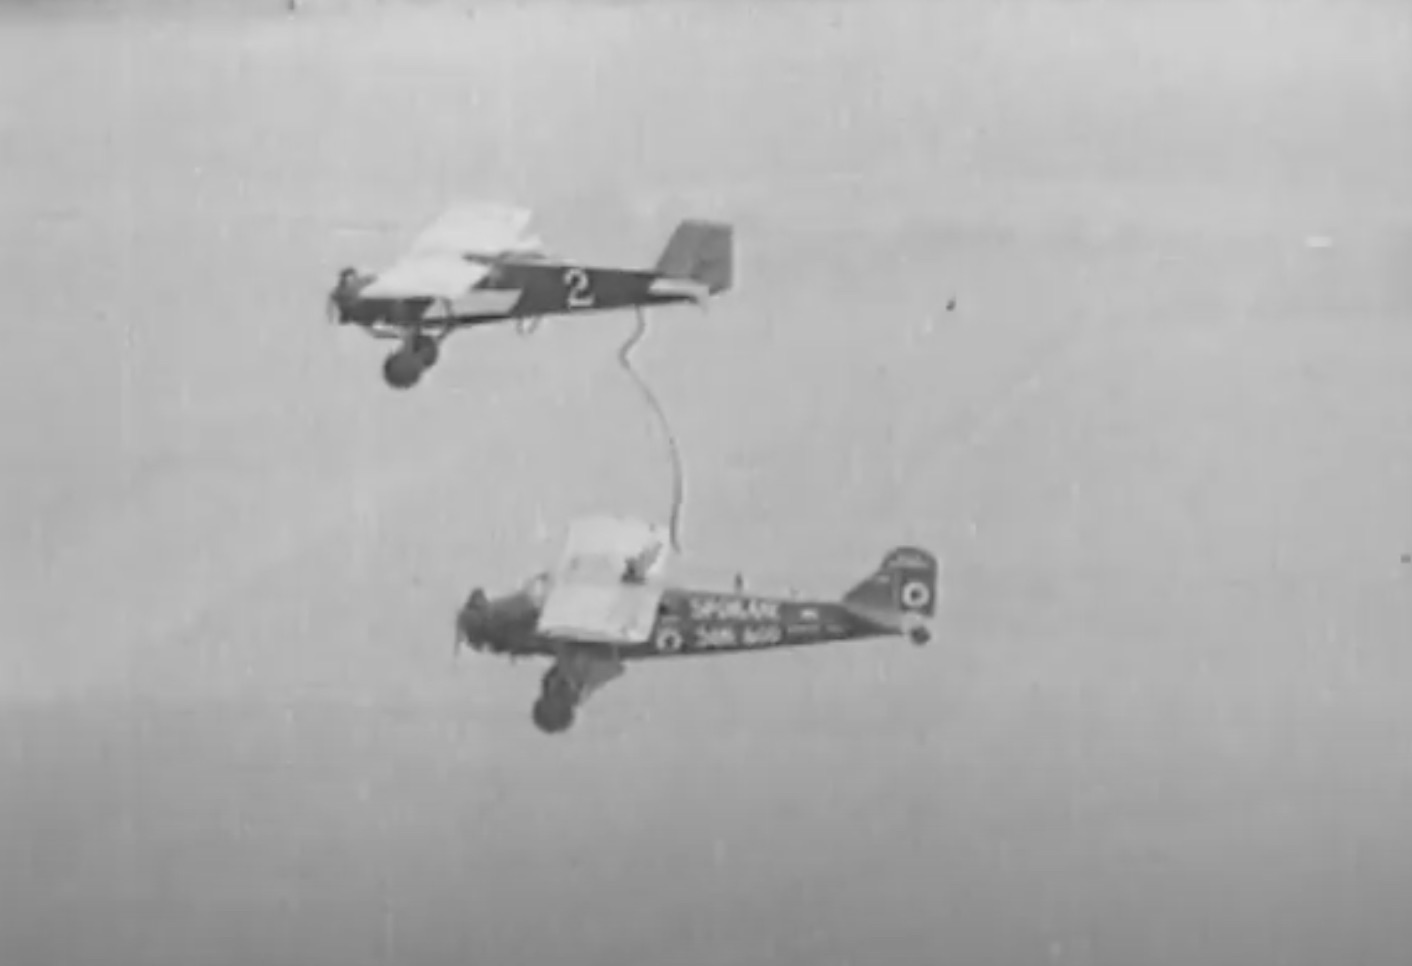 On This Day: The First Successful Mid-Air Refueling Happened In 1923